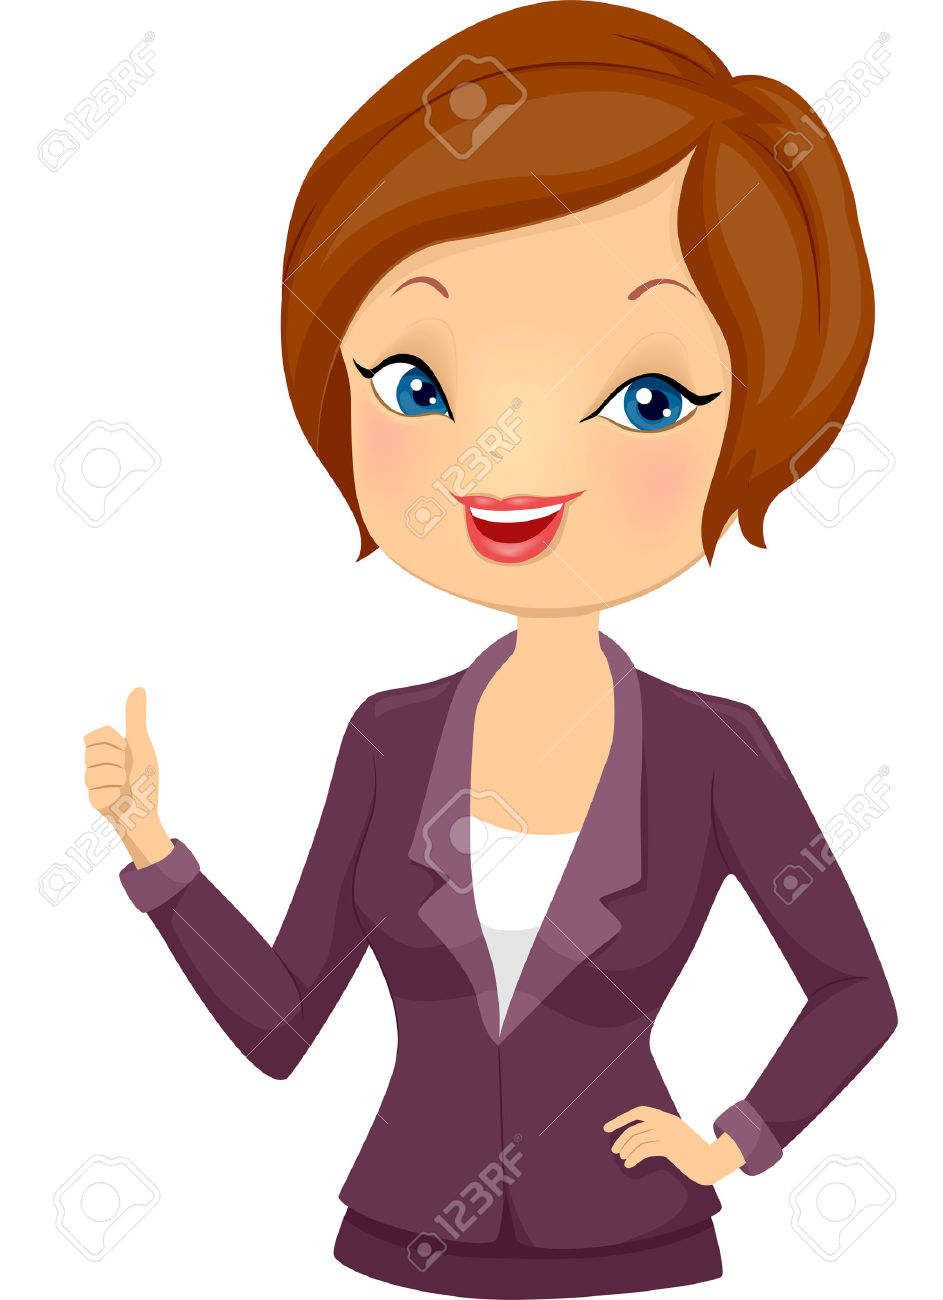 Girl giving thumbs up clipart image freeuse library Illustration Of A Girl In Corporate Attire Giving A Thumbs Up ... image freeuse library